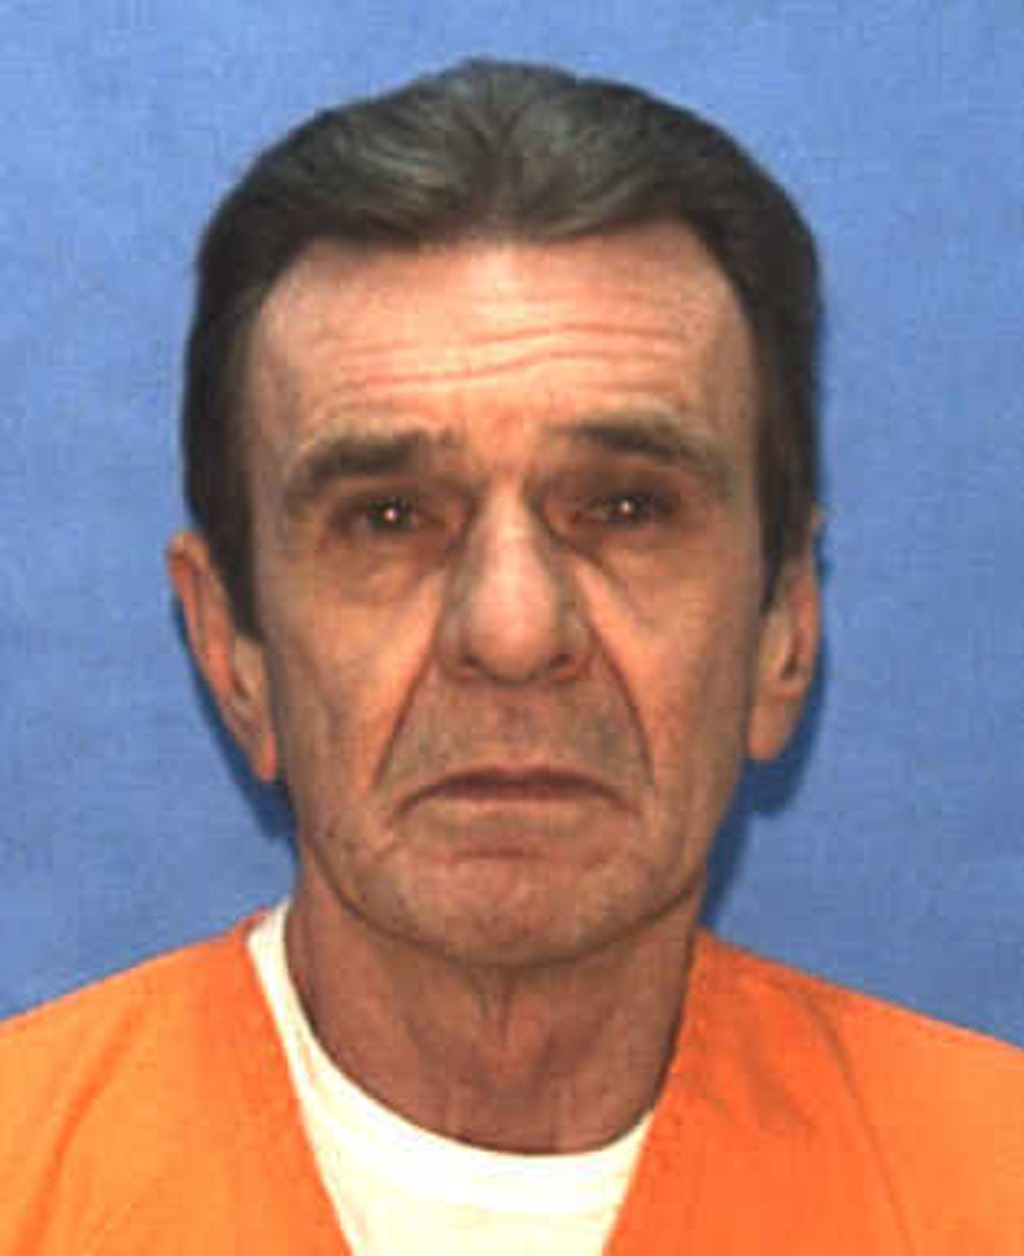 TIME ON DEATH ROW: Florida to Execute Inmate After Three Decades on Death Row